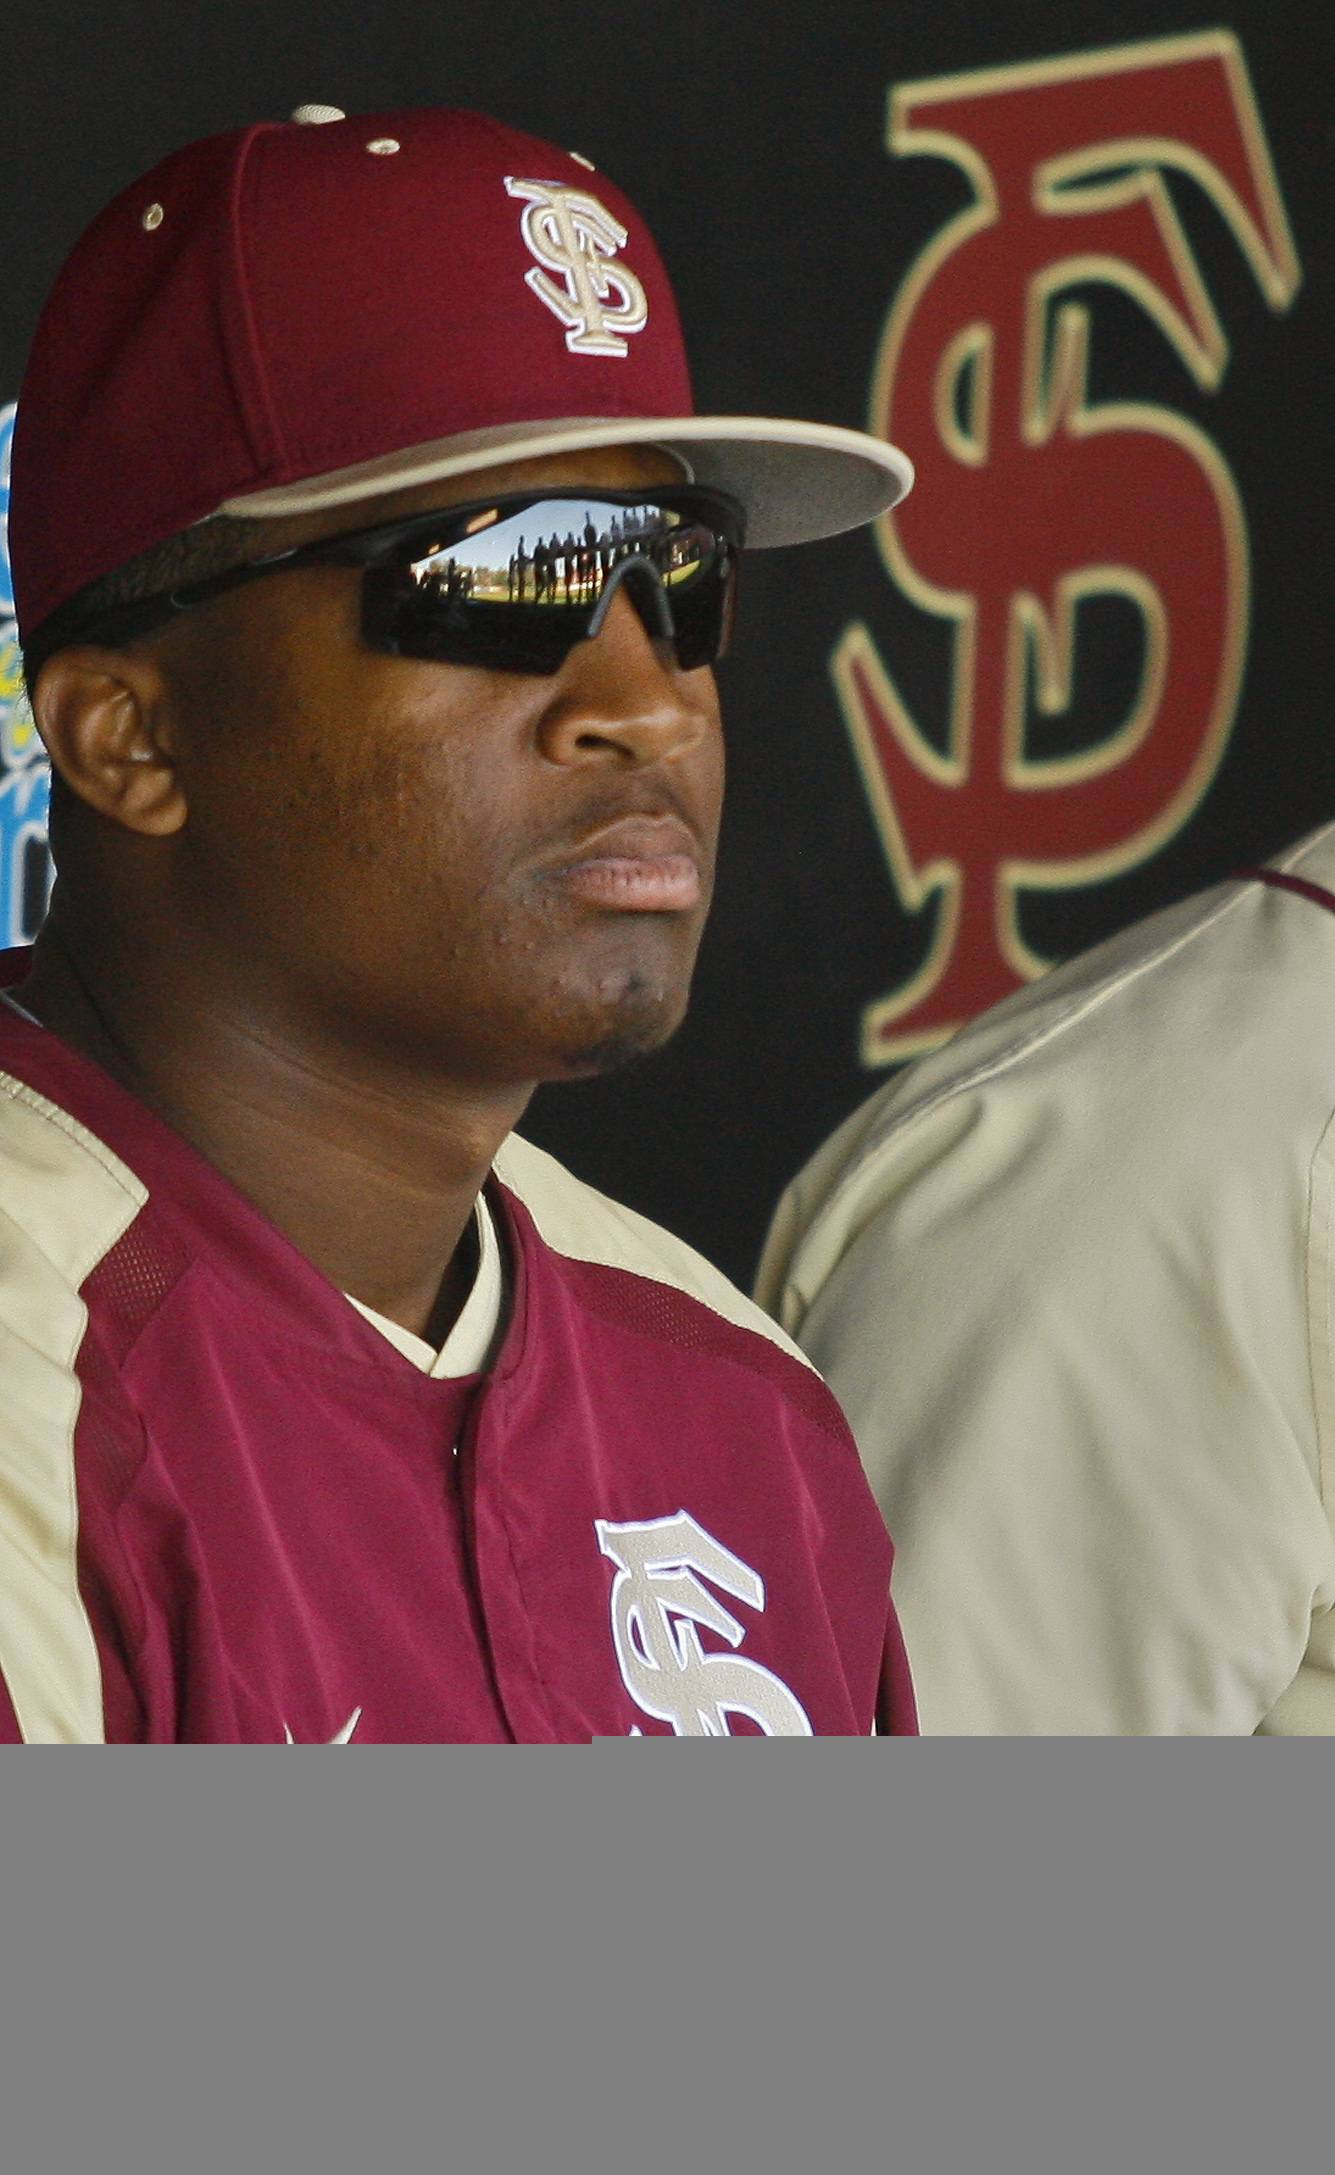 FILE - In this March 2, 2014, file photo, Florida State relief pitcher Jameis Winston sits in the dugout in the sixth inning of an NCAA college baseball game against Miami in Tallahassee, Fla. The Florida State baseball team has indefinitely suspended Heisman Trophy winner Jameis Winston, who is a relief pitcher for the Seminoles. Baseball coach Mike Martin said in a statement Wednesday, April 30, 2014, that Winston was issued a citation the night before, but he did not give specifics. The Leon County Sheriff's Office has declined comment.